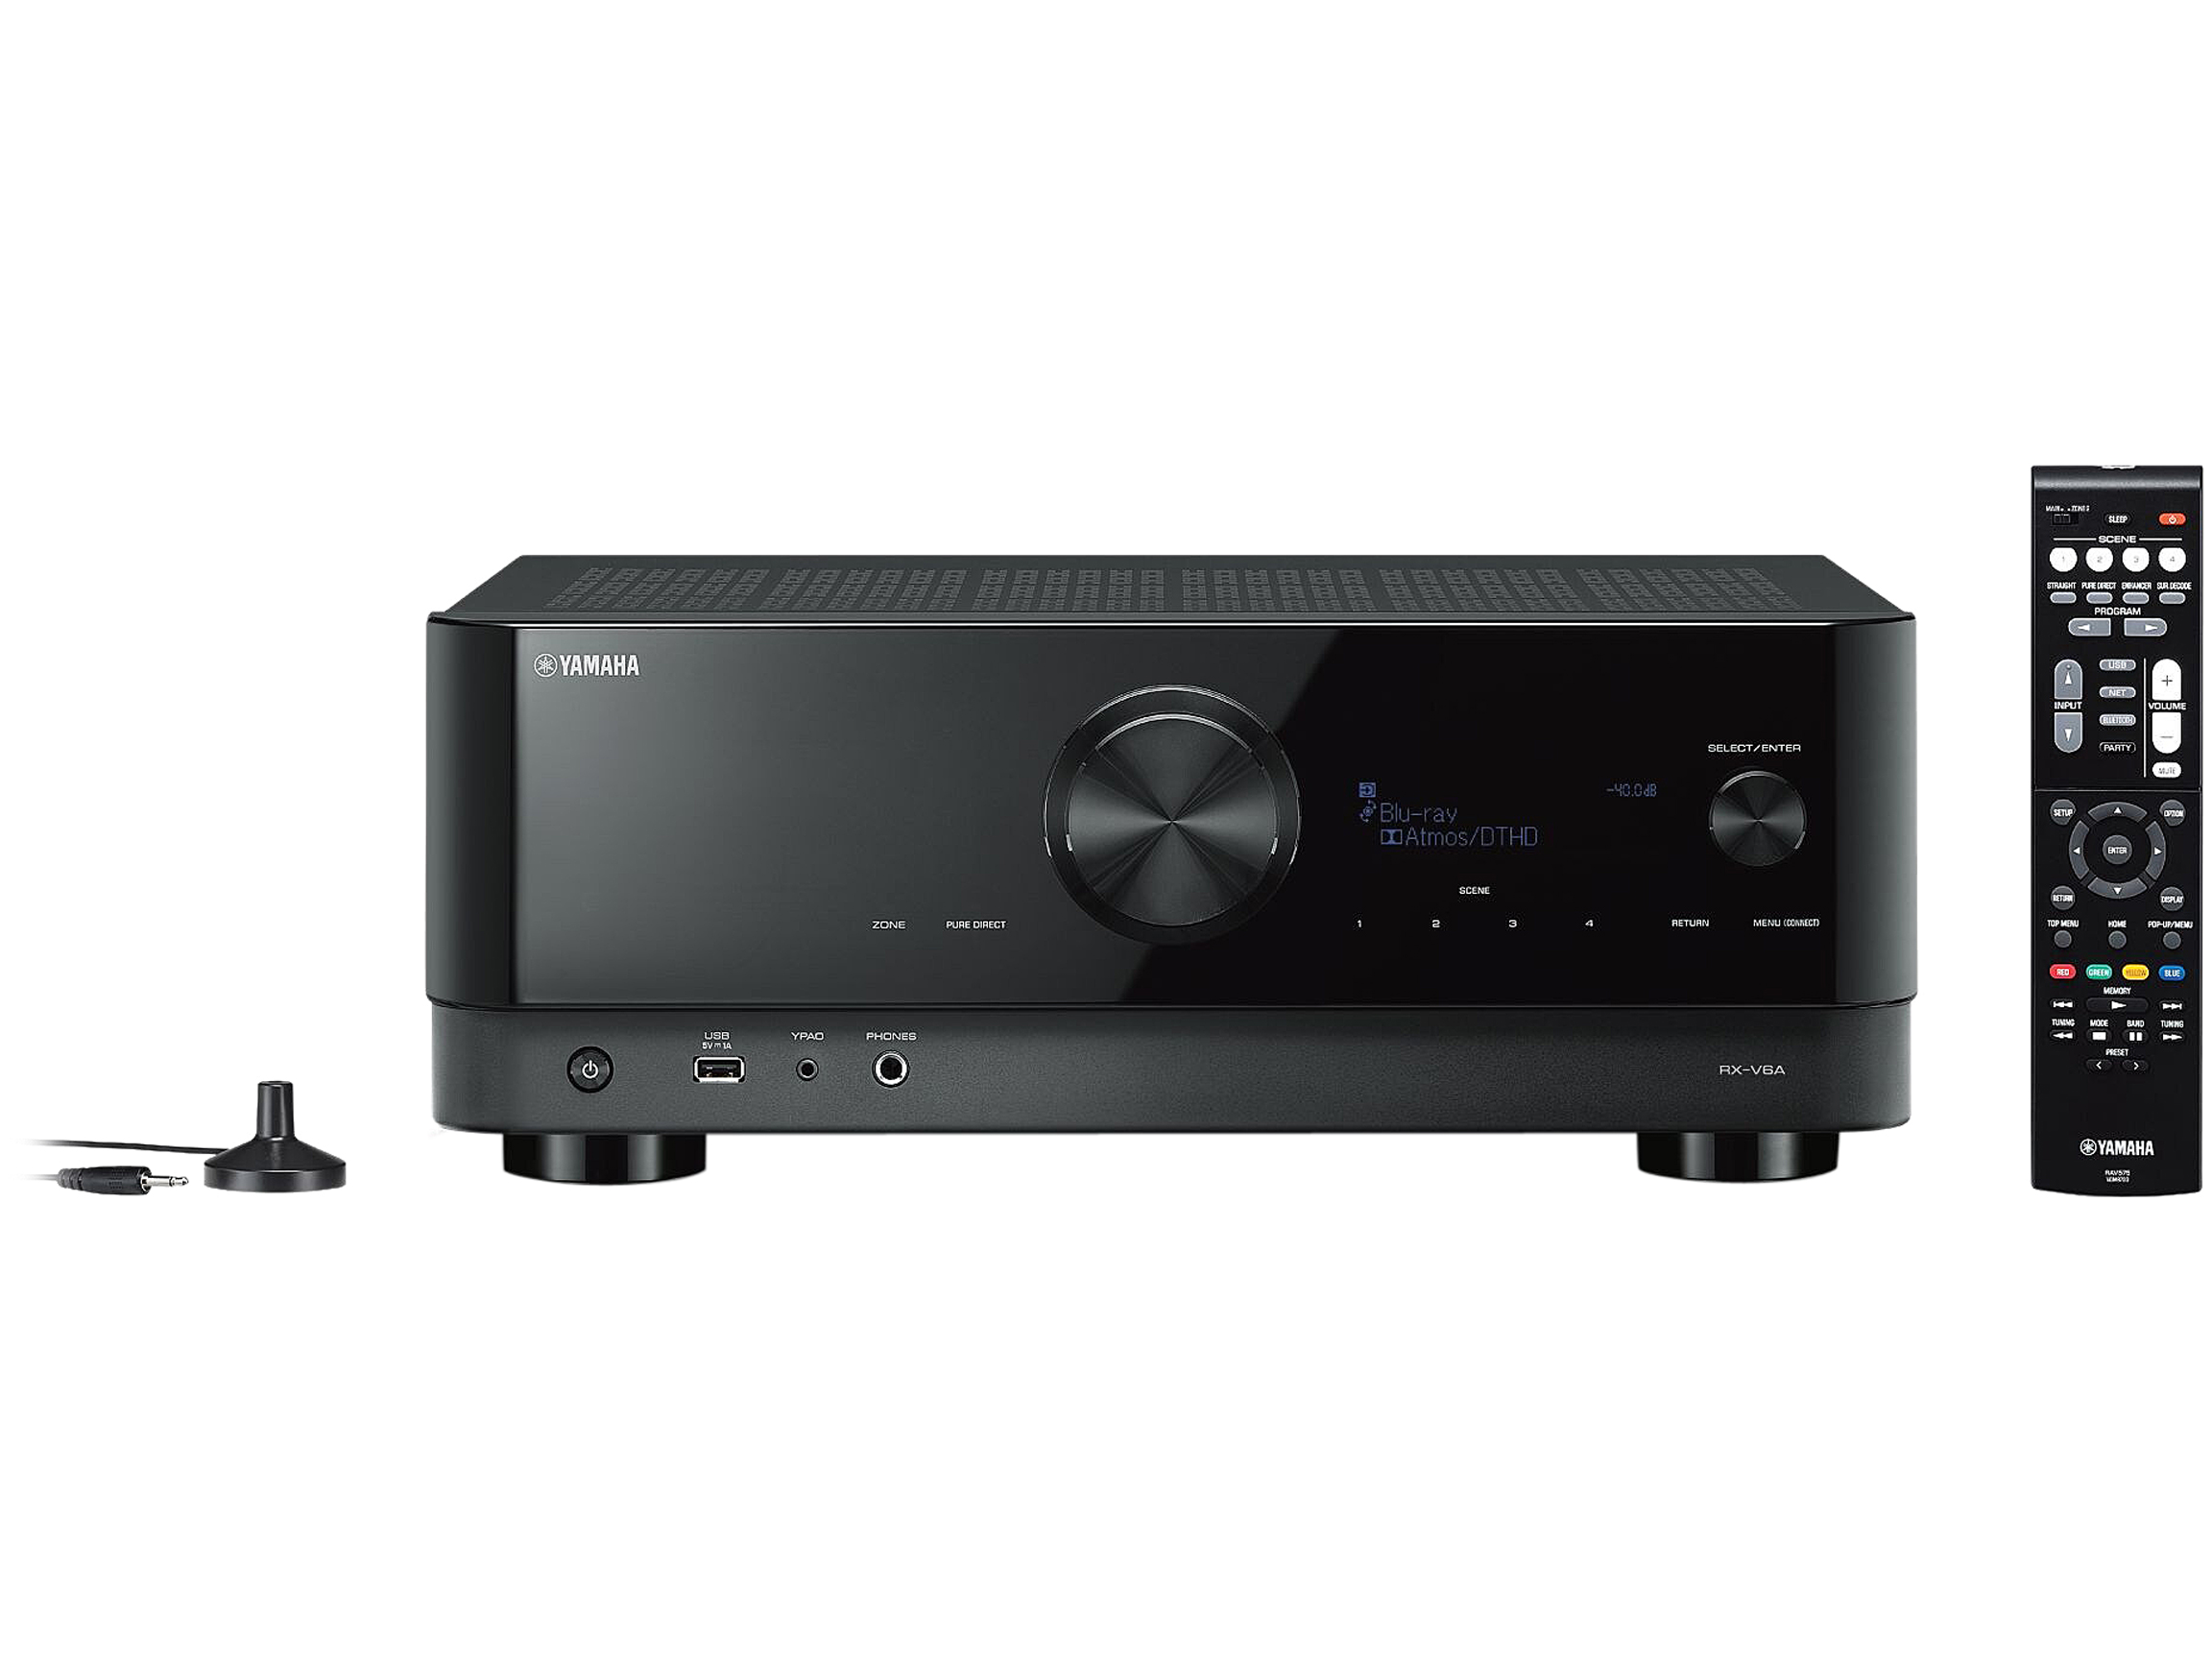 YAMAHA RX-V6A 7.2-Channel AV Receiver with 8K HDMI